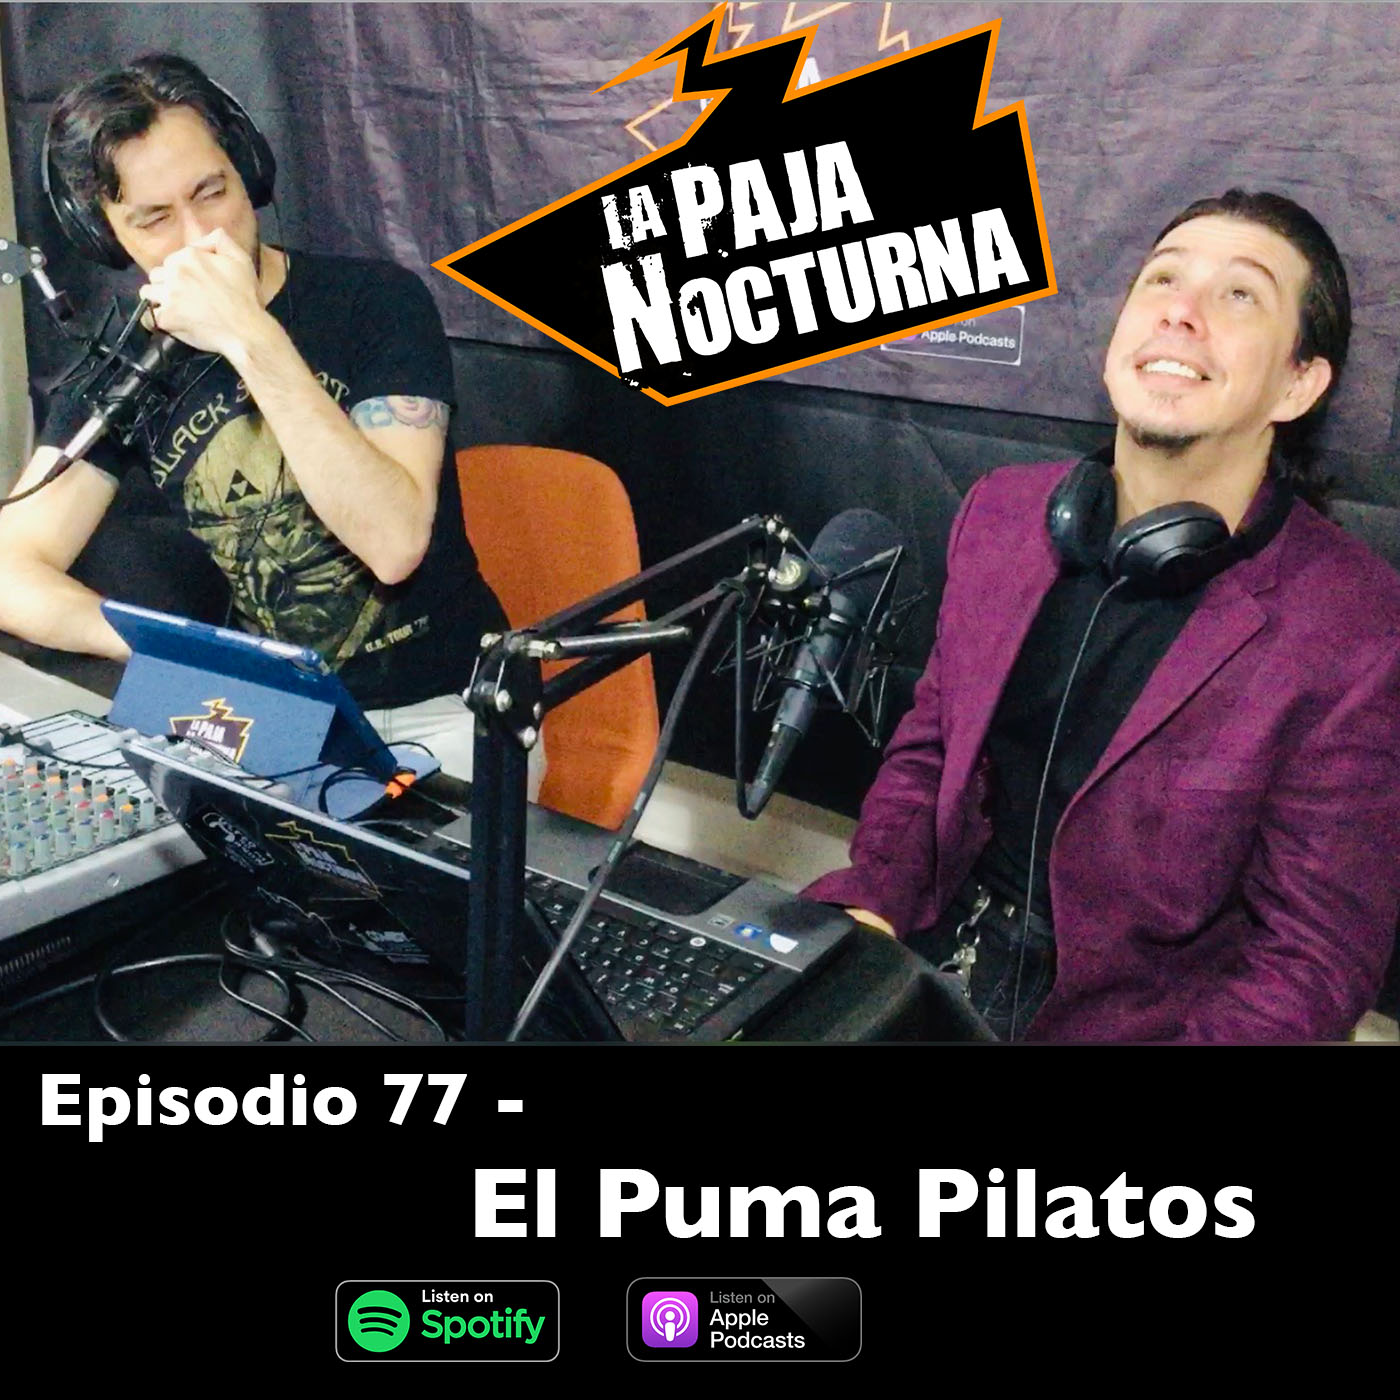 La paja nocturna podcast Episodio 77